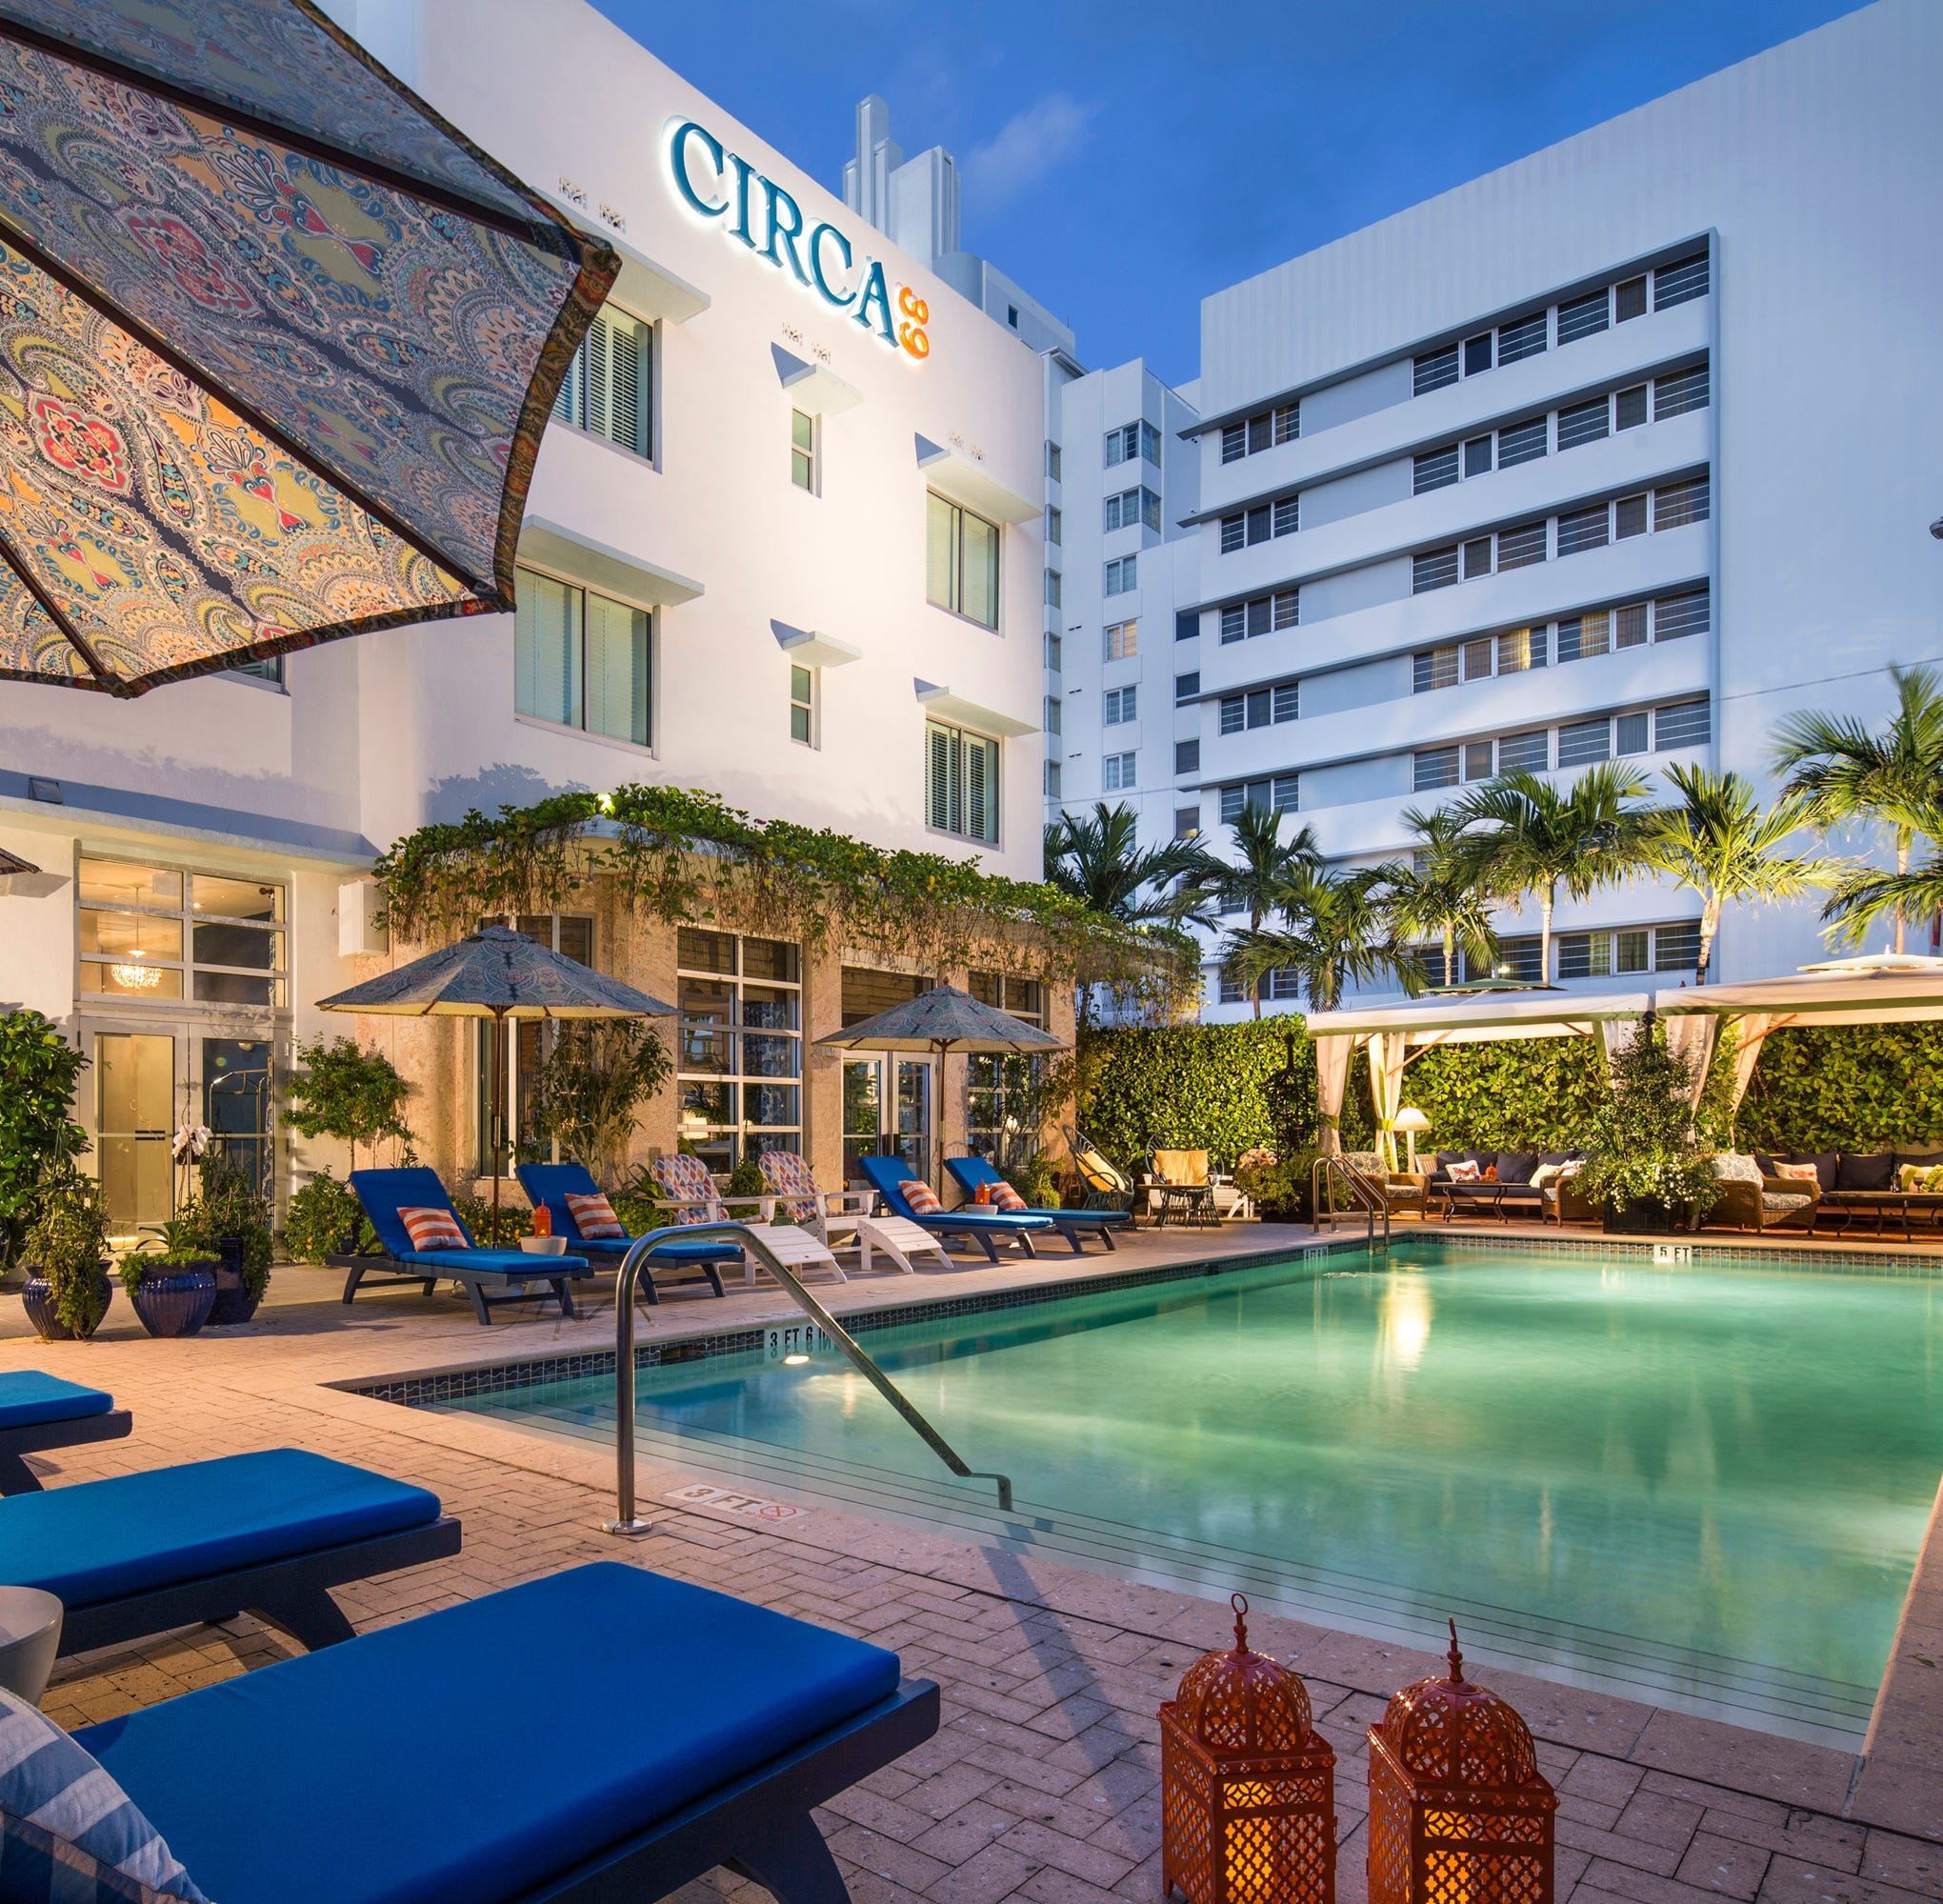 Travel Deal: Miami Beach, Florida